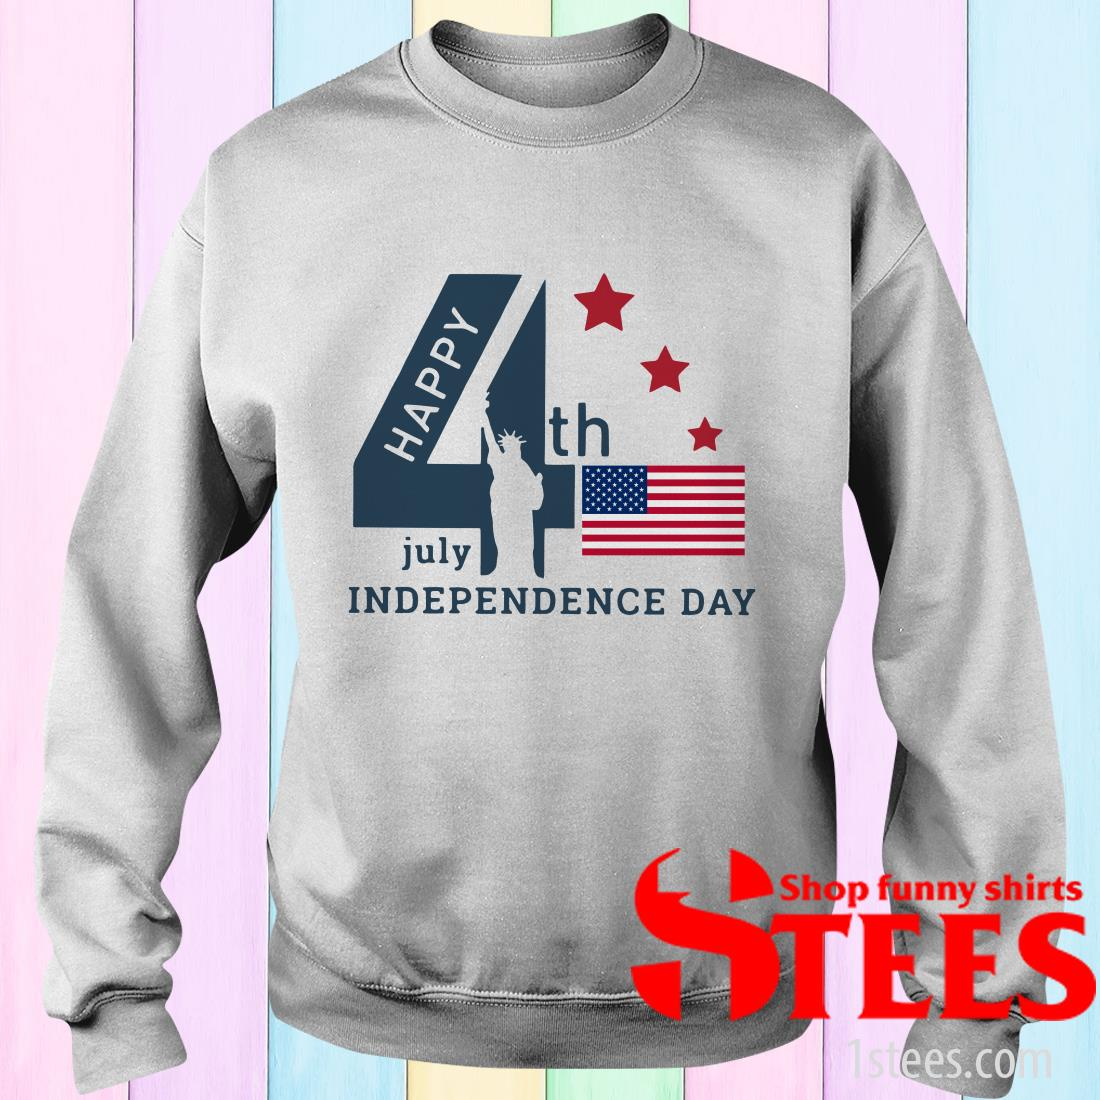 The World Happy 4th Of July Independence Day American Flag T-Shirt